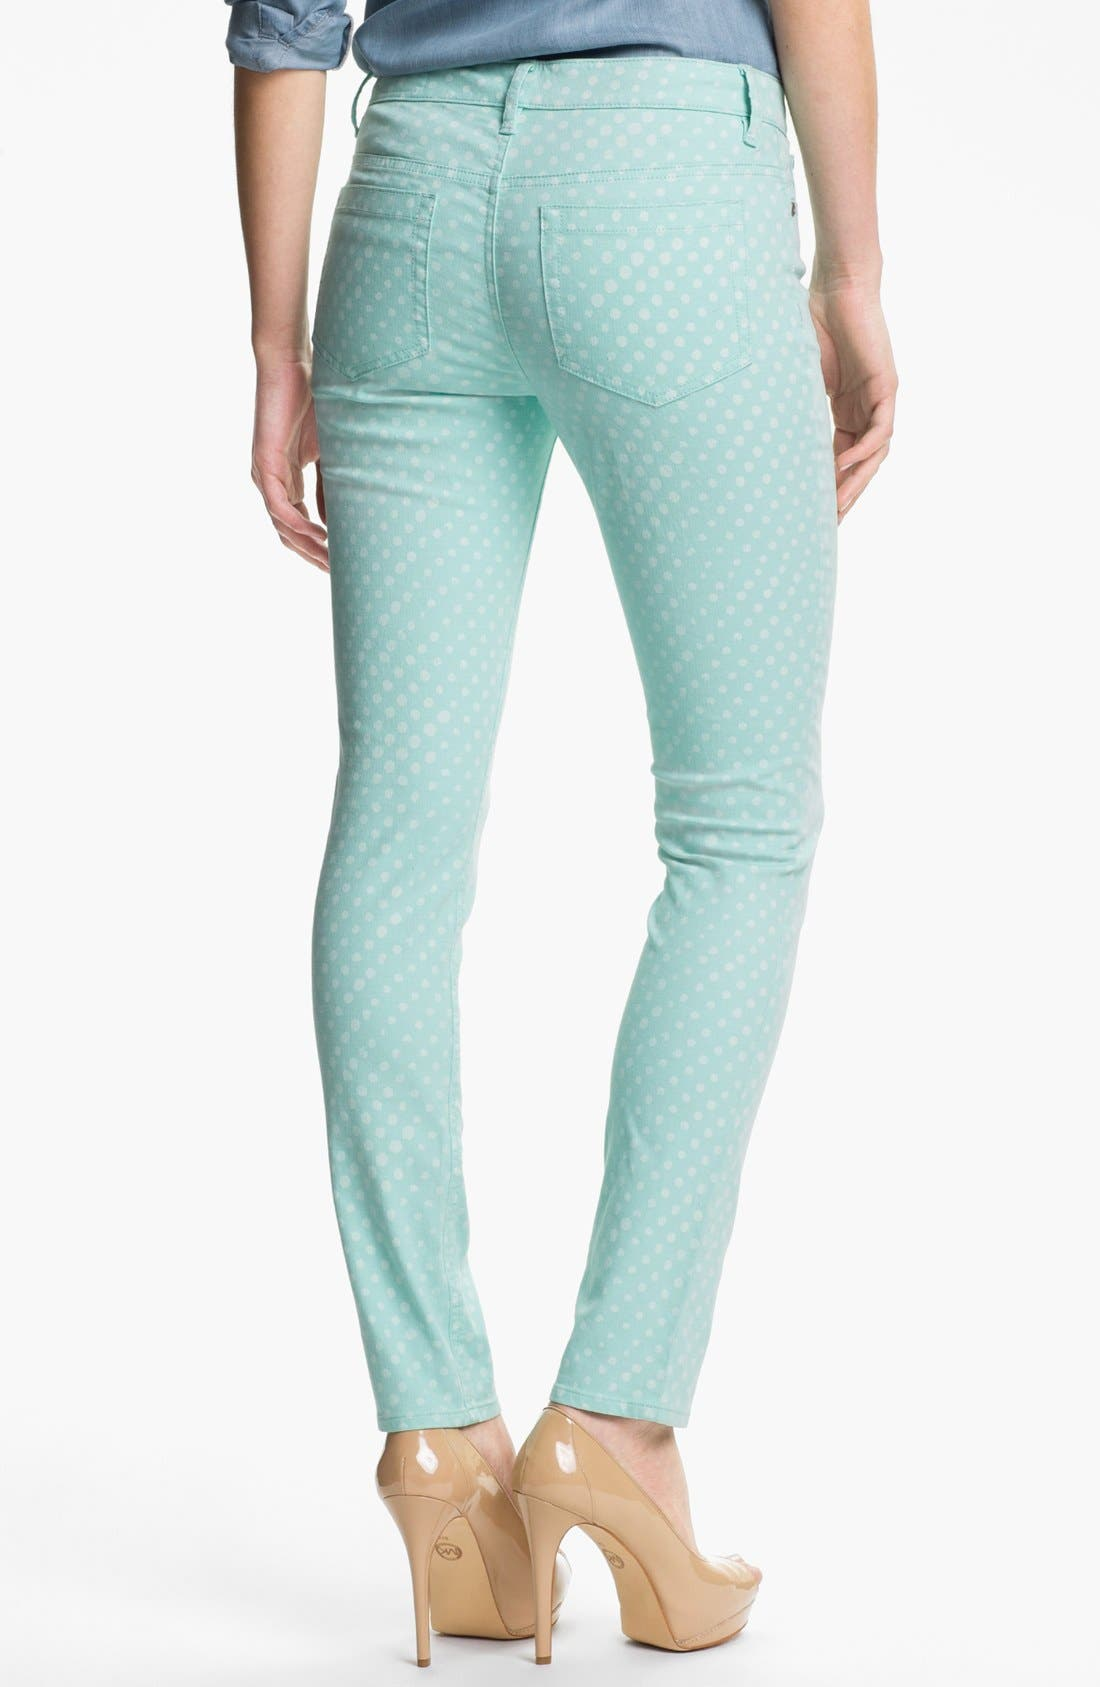 Alternate Image 2  - Two by Vince Camuto Polka Dot Straight Leg Jeans (Petite)